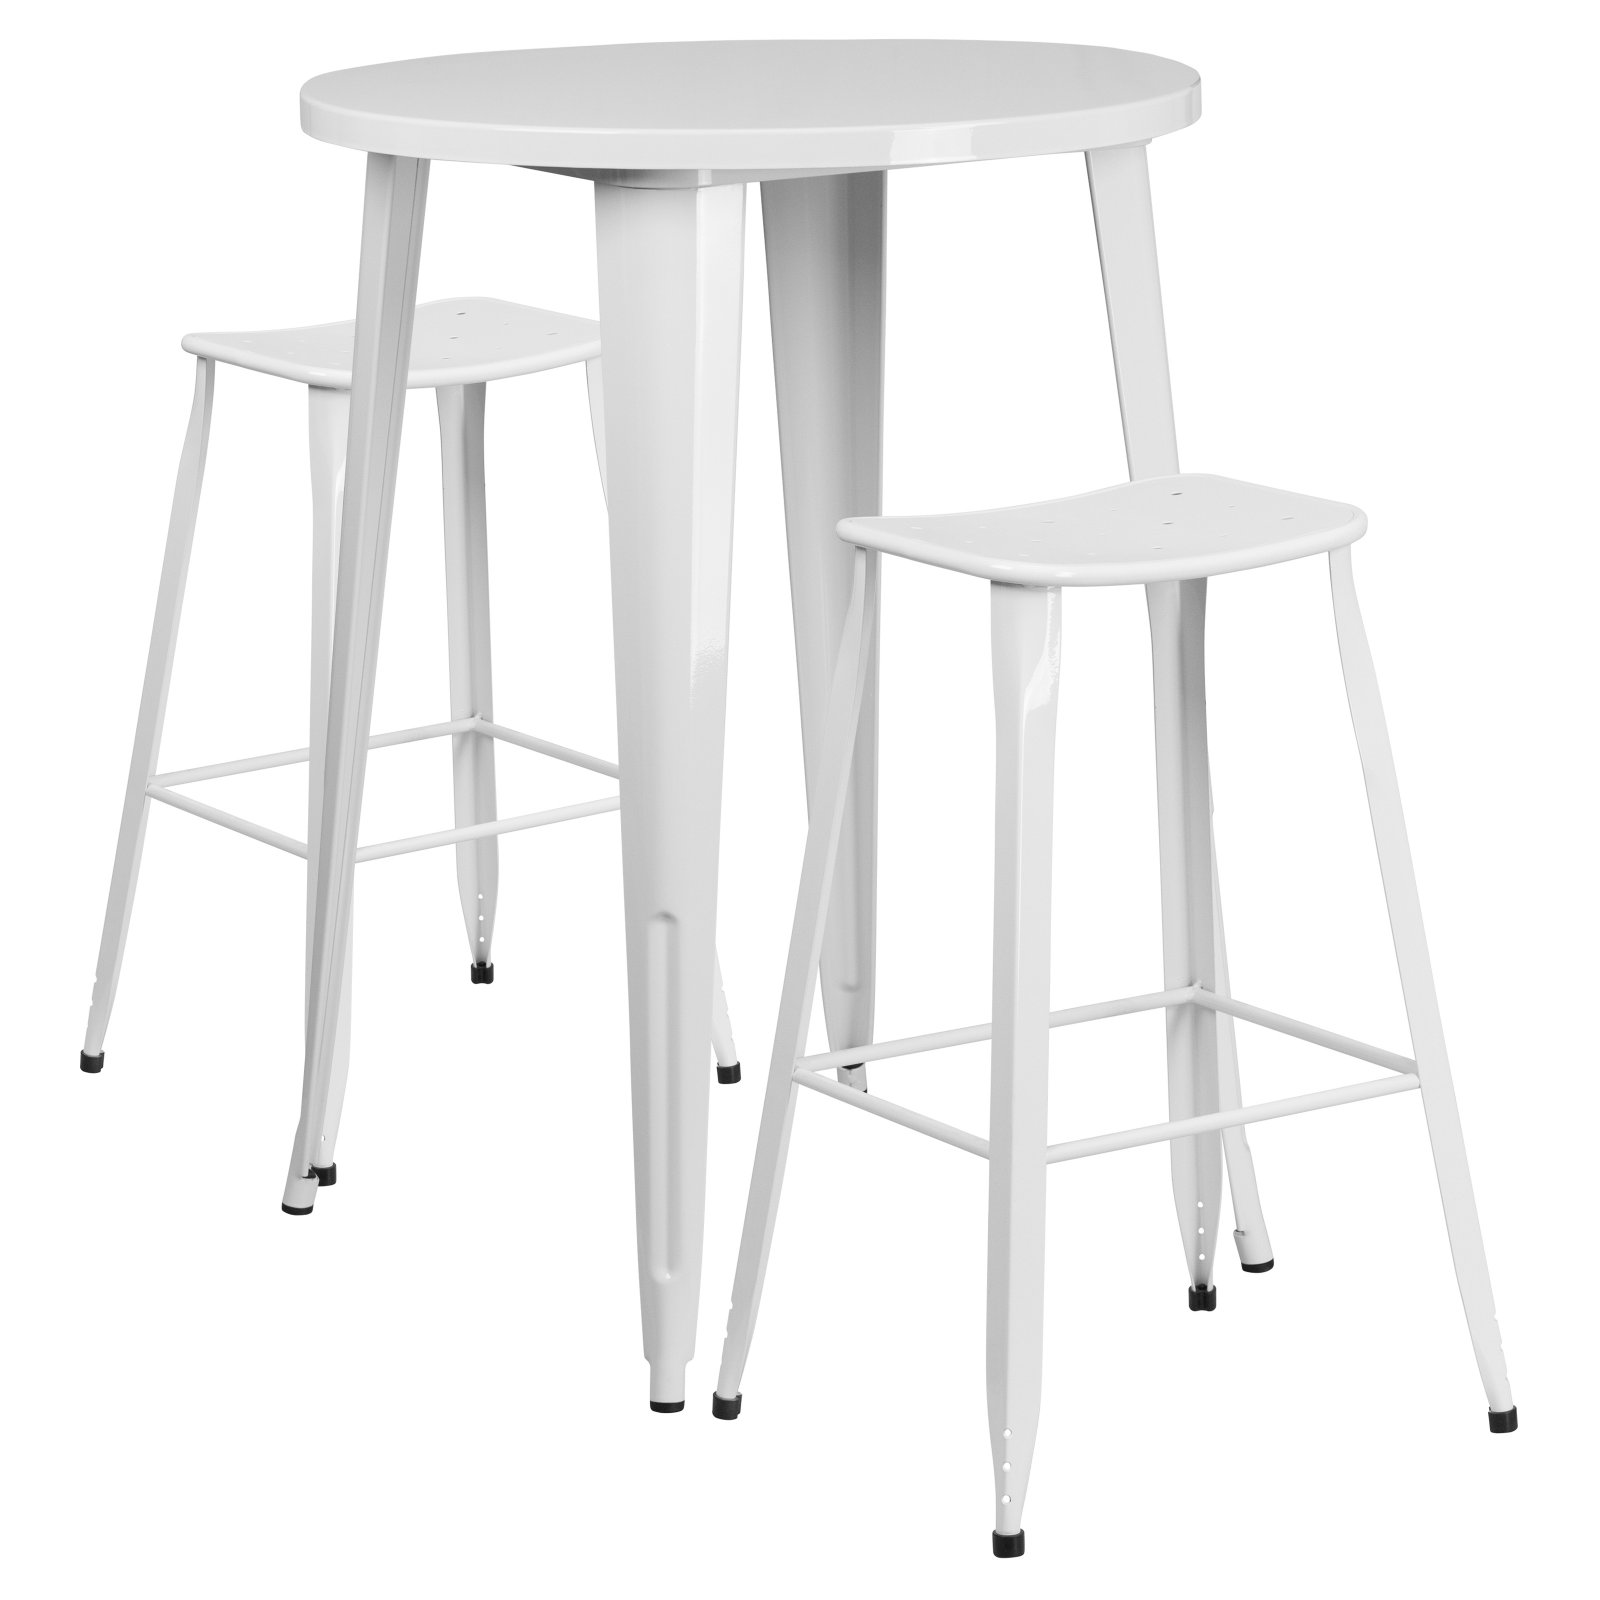 Flash Furniture 30'' Round White Metal Indoor-Outdoor Pub Table Set with 2 Backless Saddle Seat Bar Stools by Flash Furniture